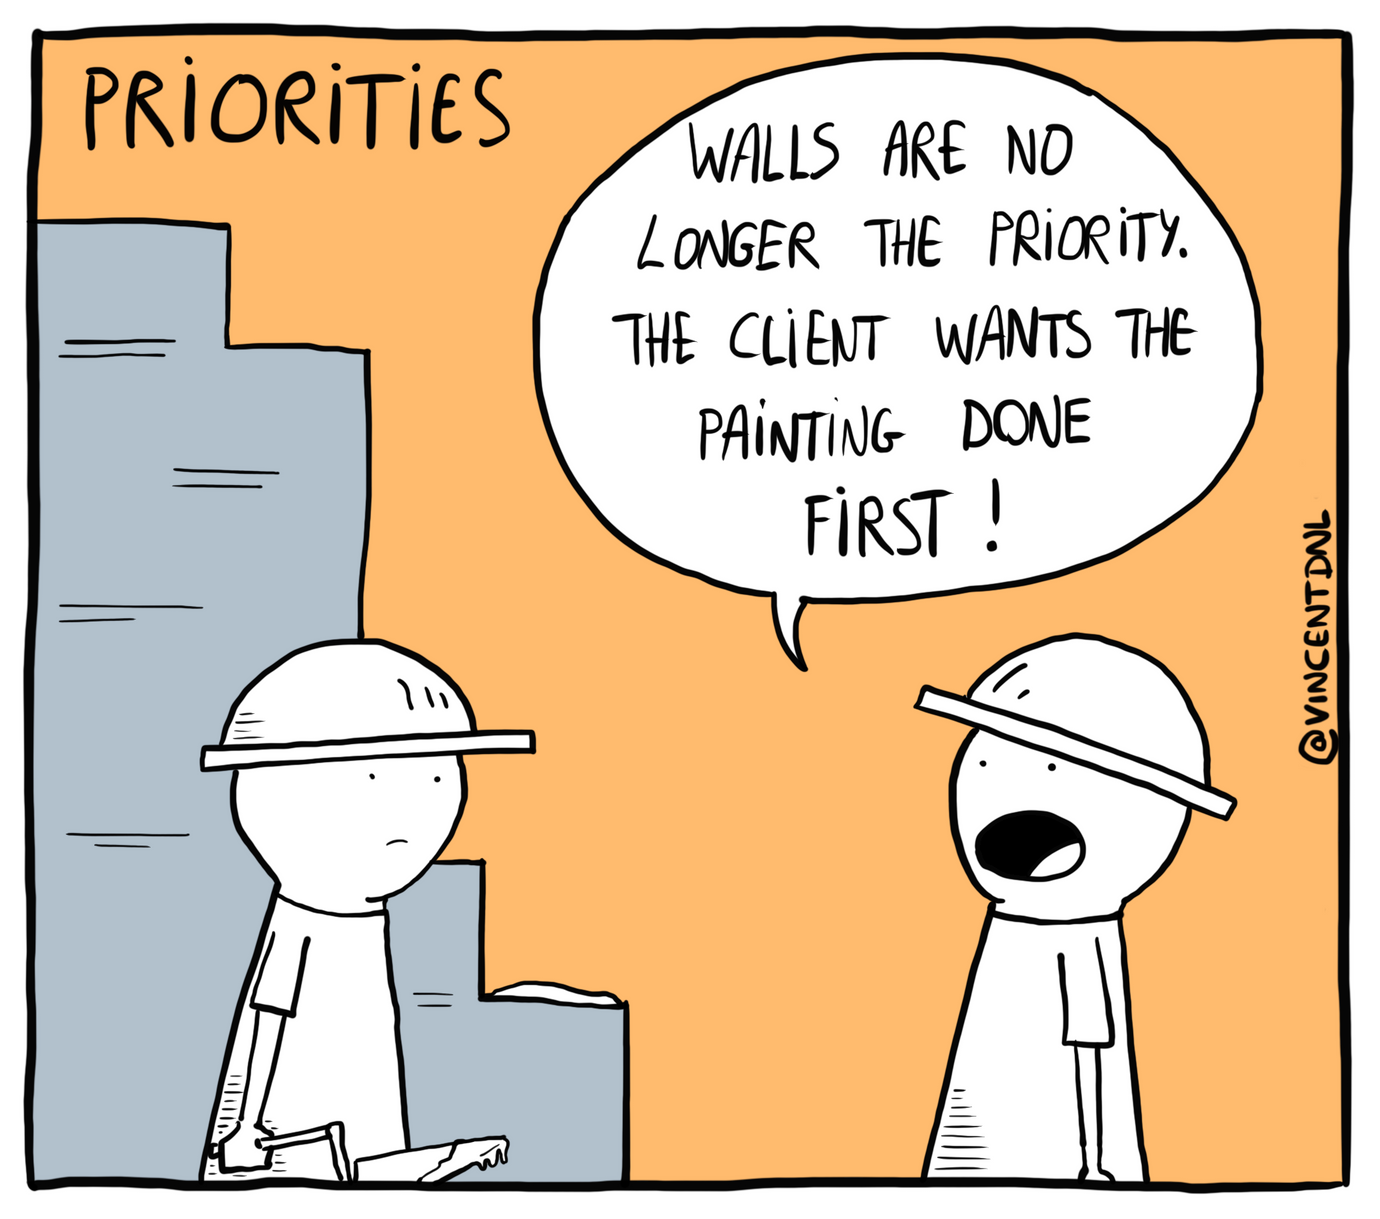 drawing - text: Priorities - Wall are no longer the priority. The client wants the painting done first!